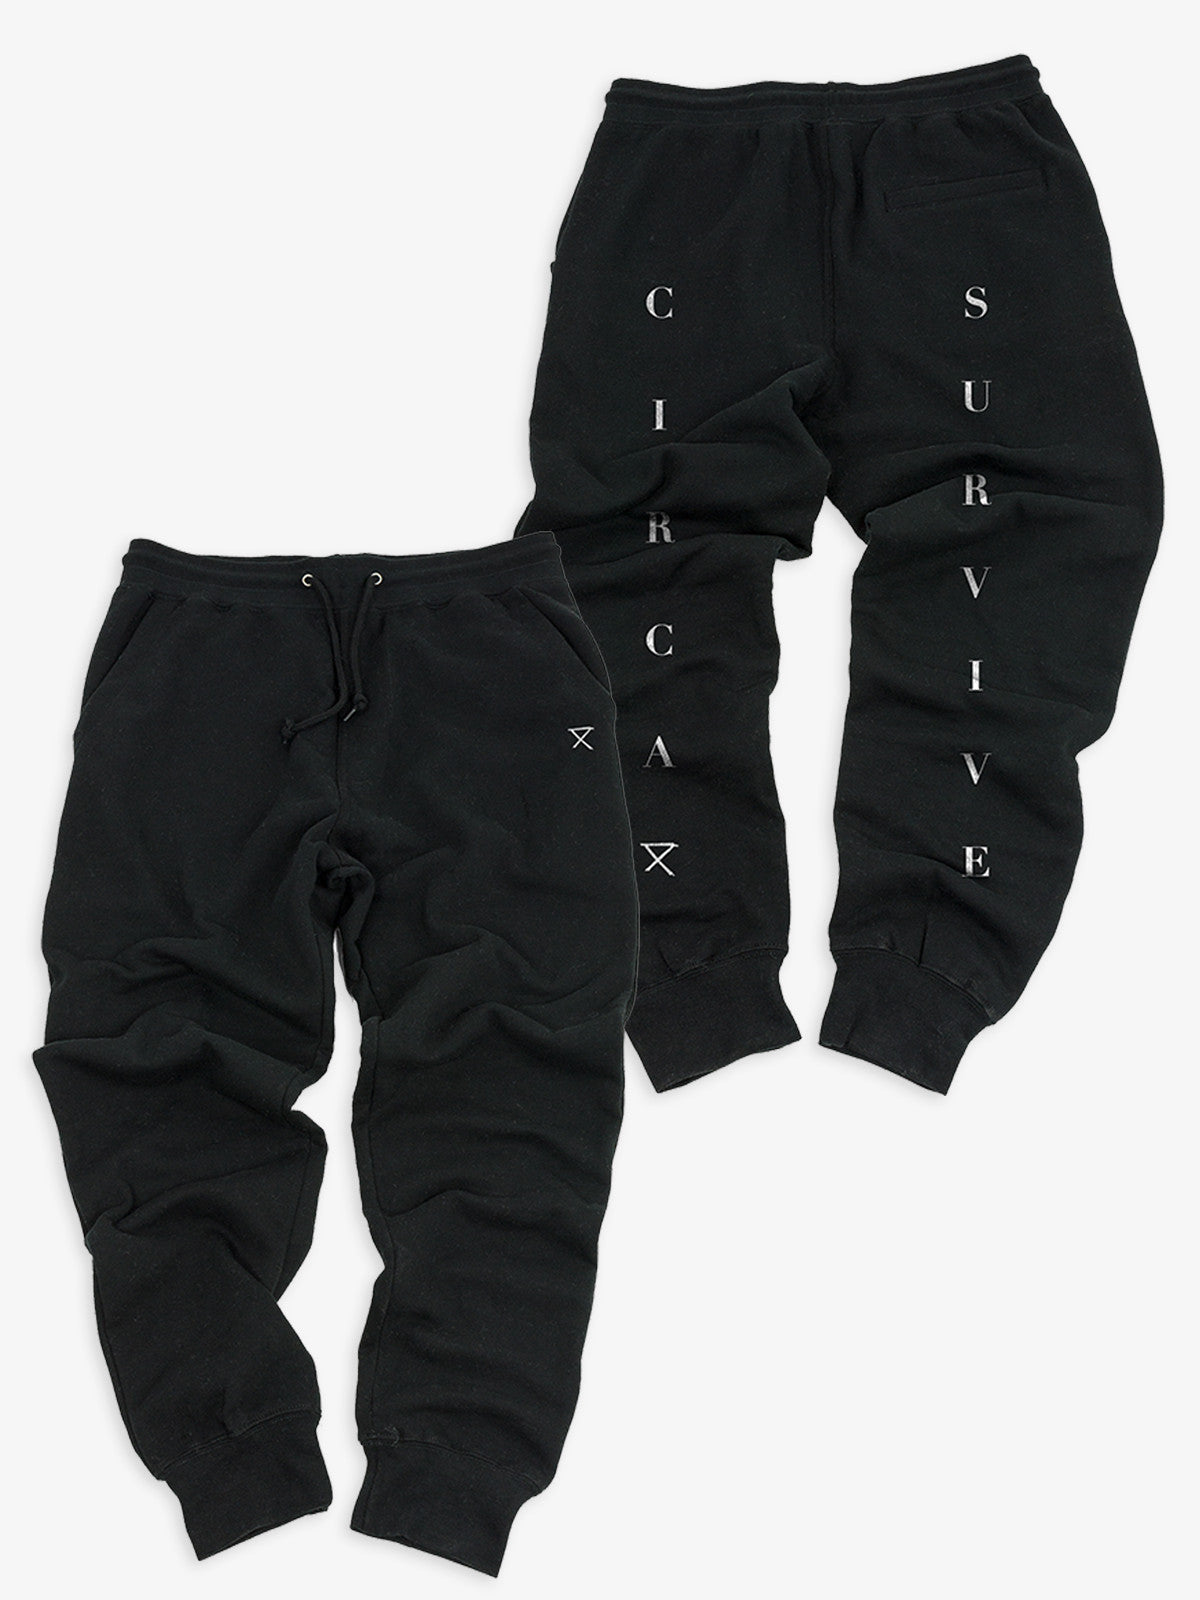 Circa Survive - Logo Joggers - MerchLimited - 1